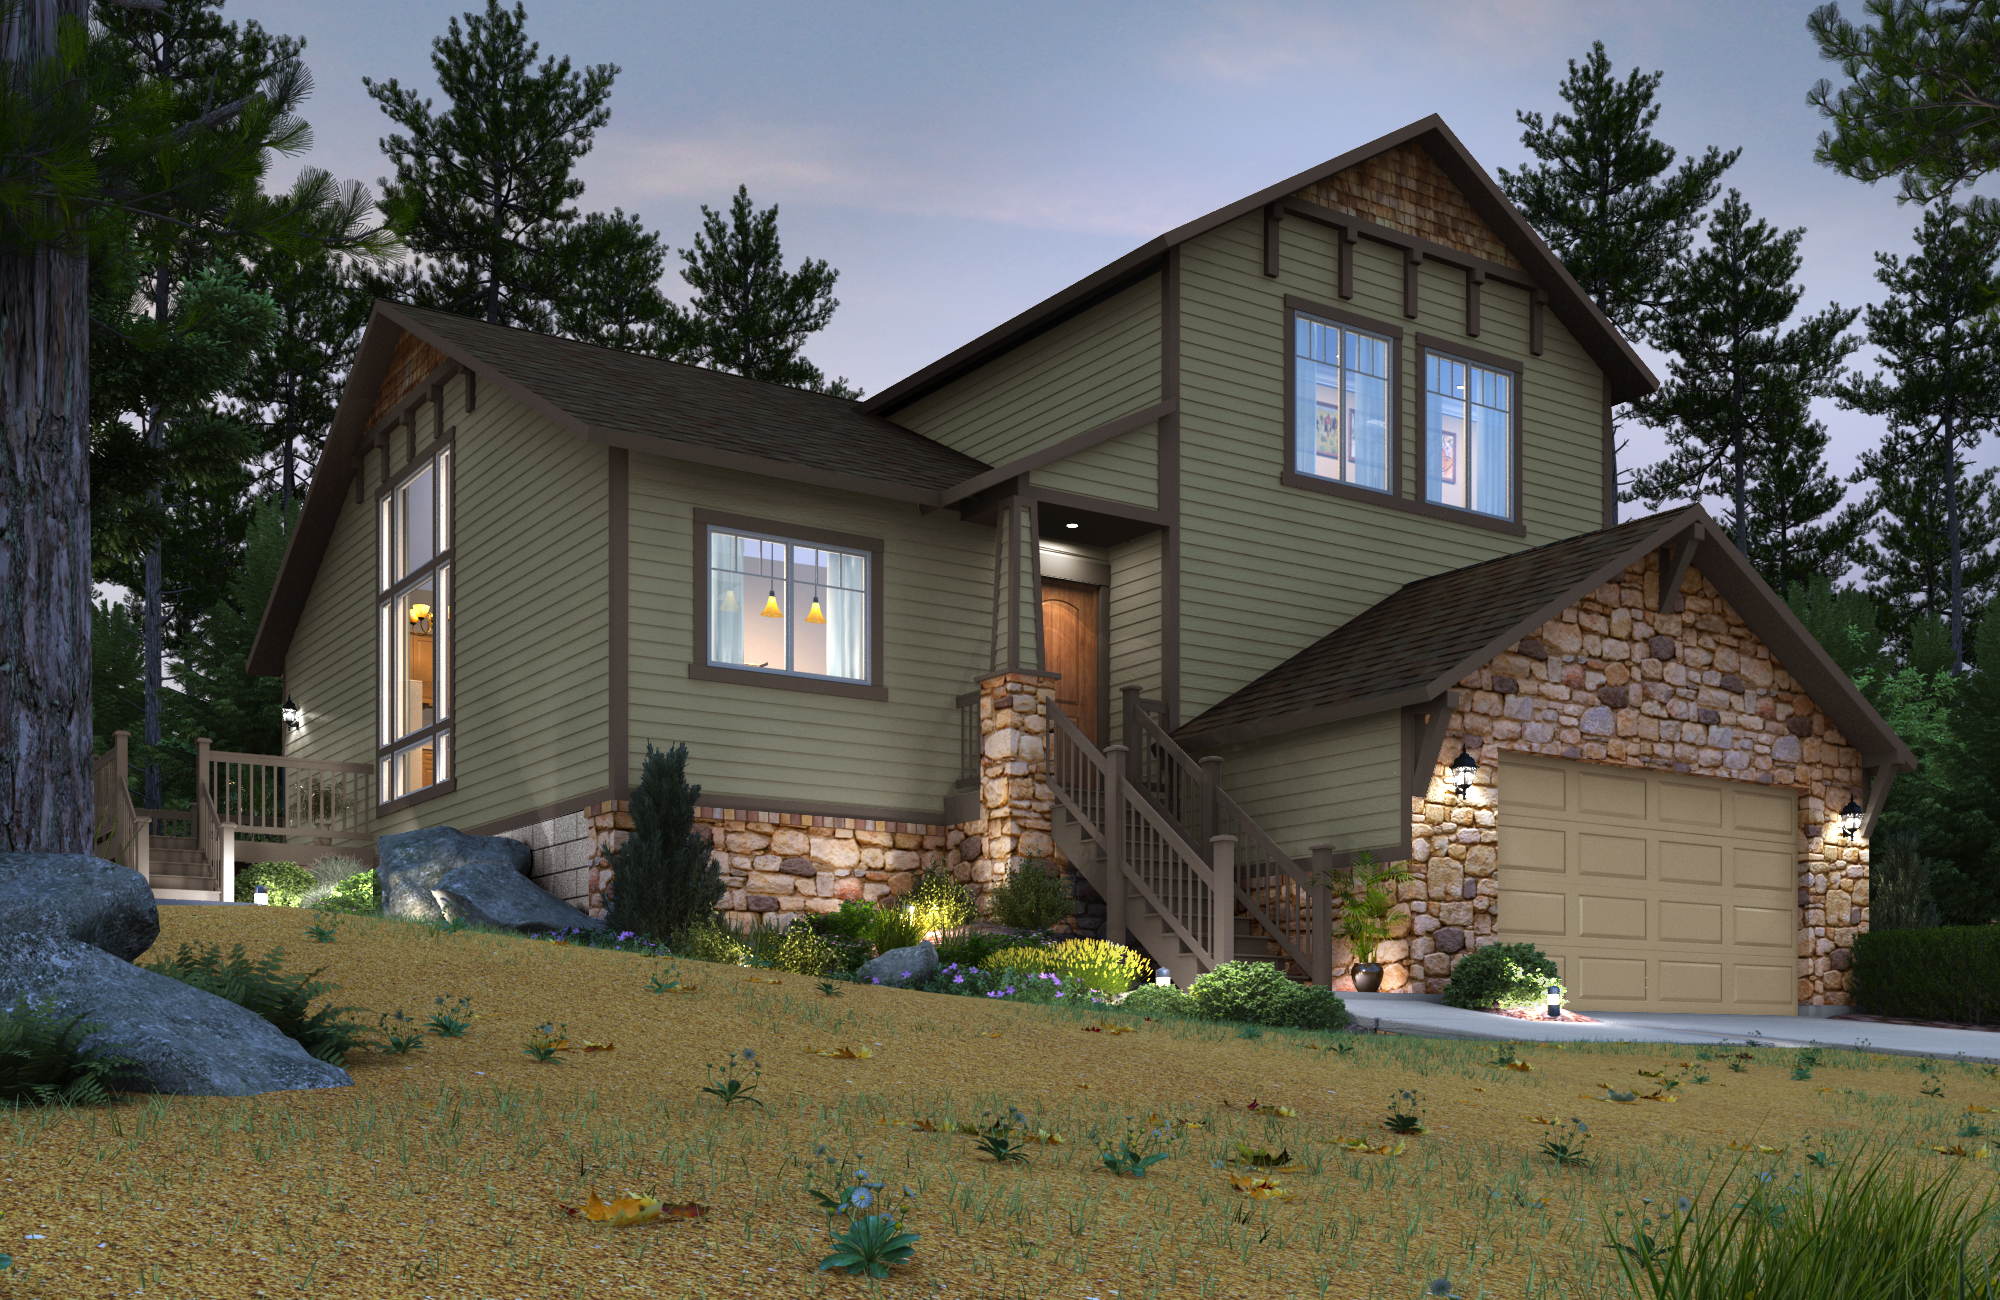 Sunrock at shaver lake luxury vacation homes for sale by for Granville home